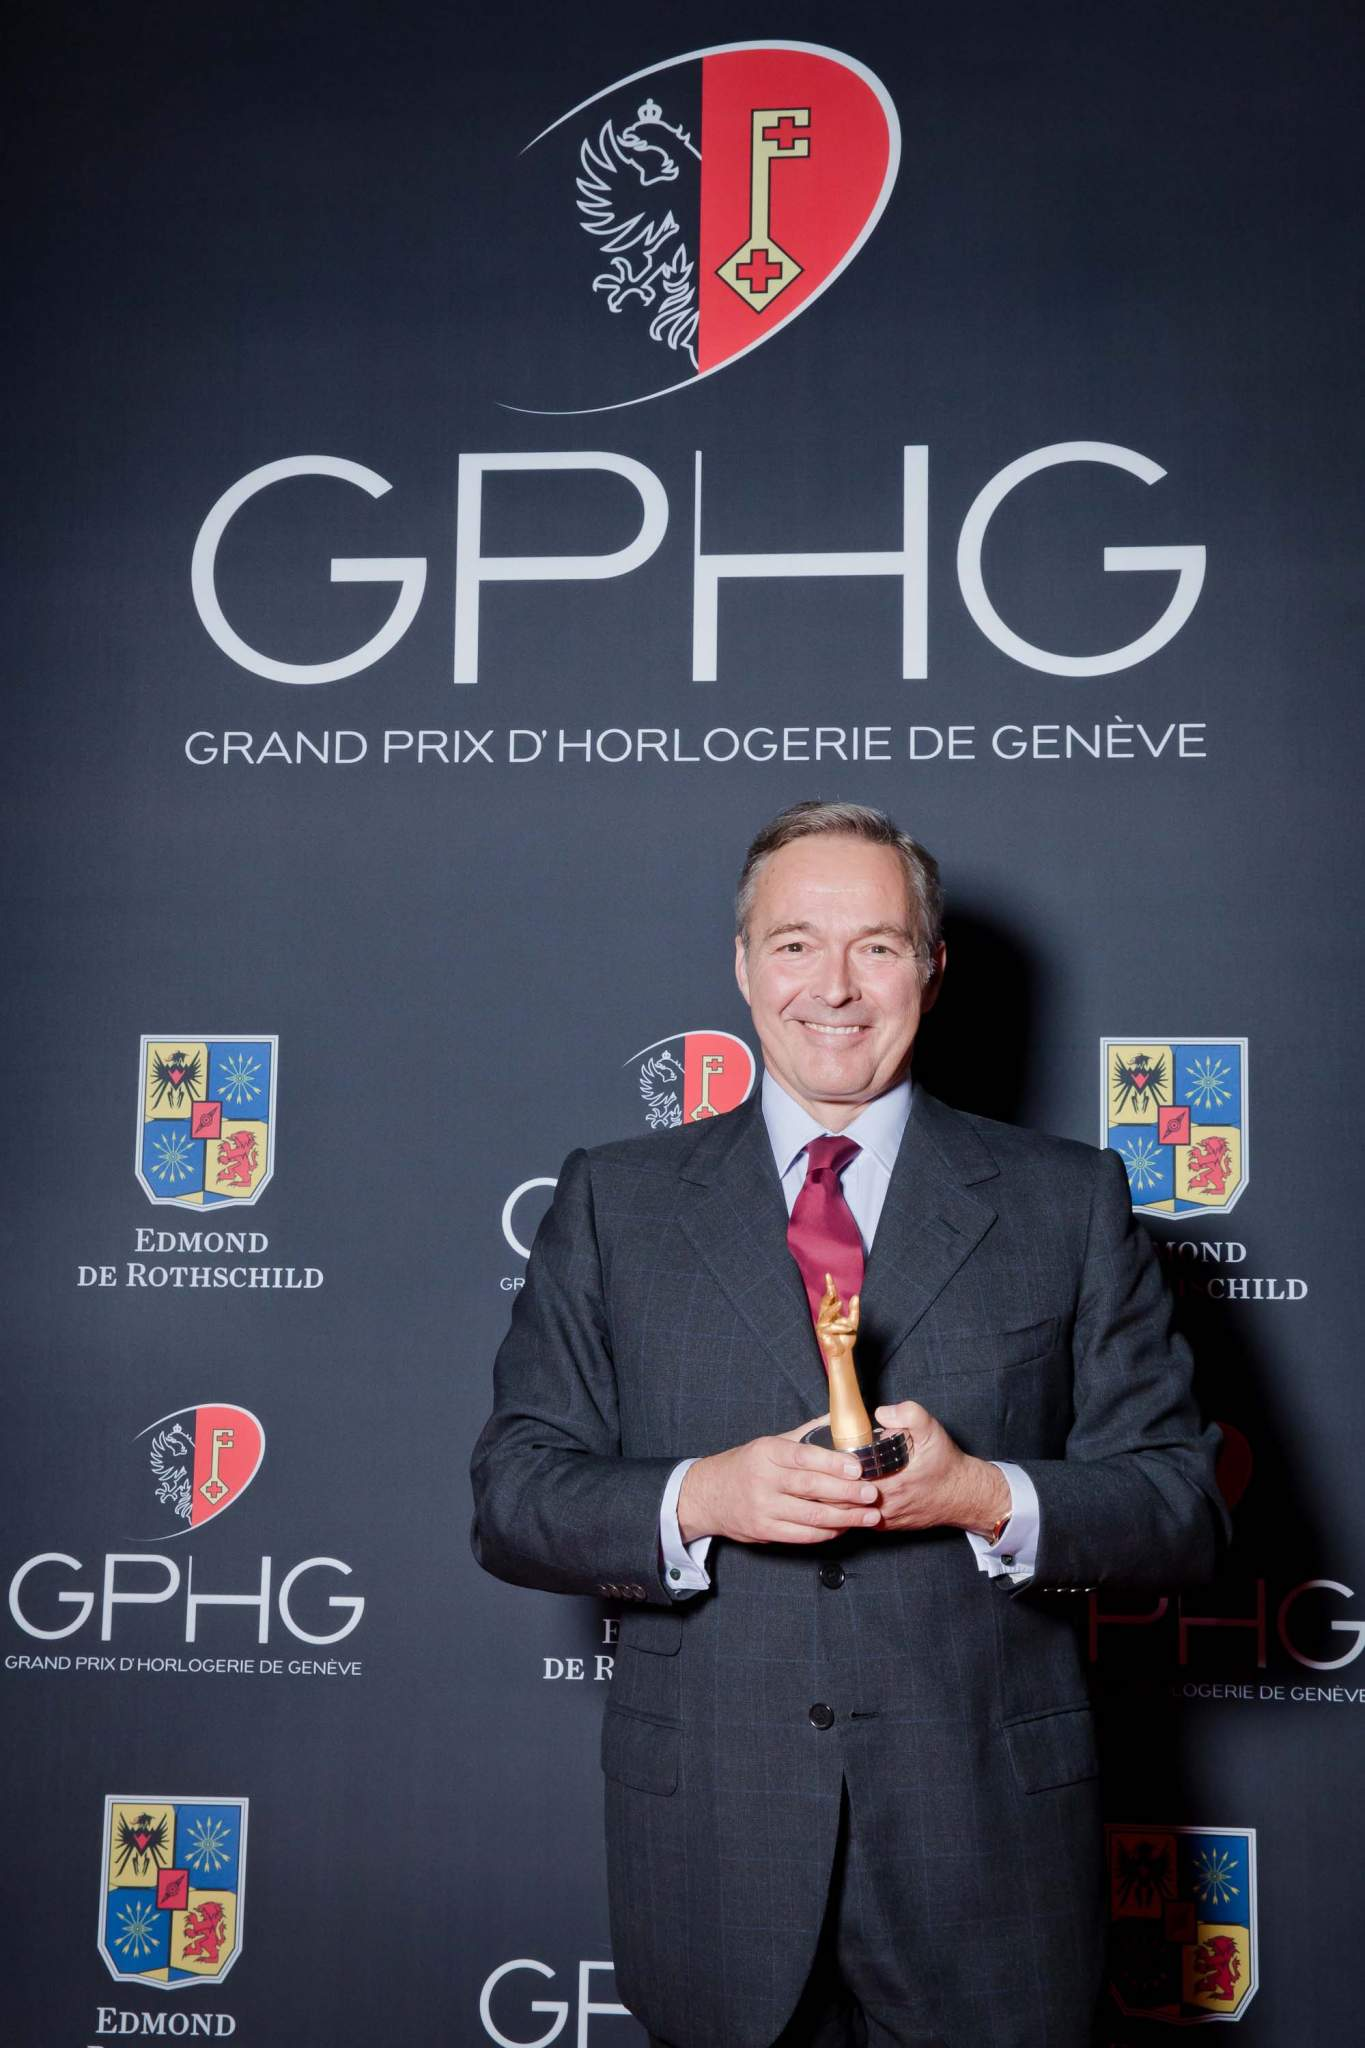 Karl-Friederich Scheufele, co-president of Chopard, winner of Jewellery Watch Prize 2013